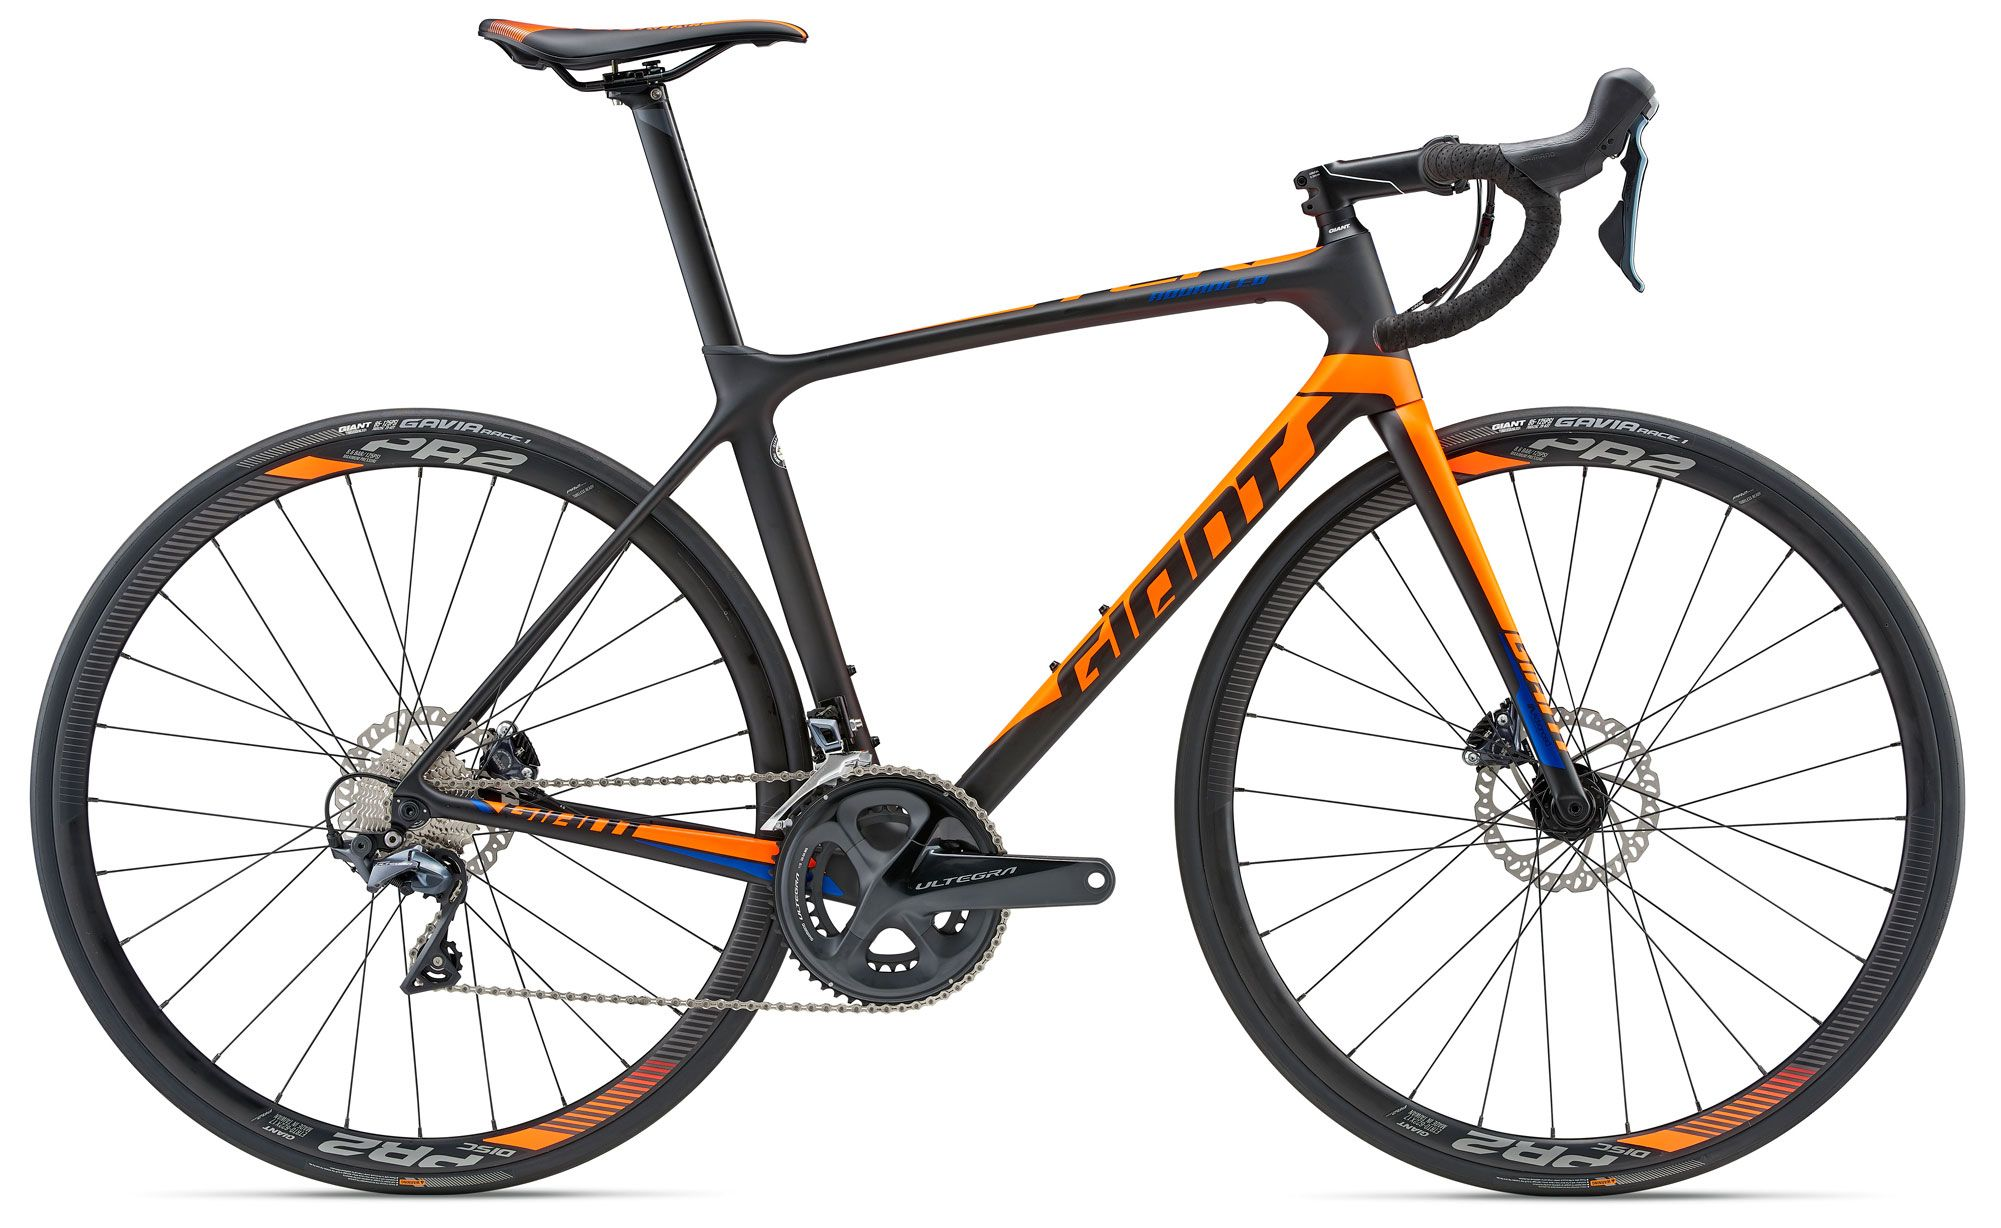 Велосипед Giant TCR Advanced 1 Disc 2018 велосипед giant xtc composite 1 2013